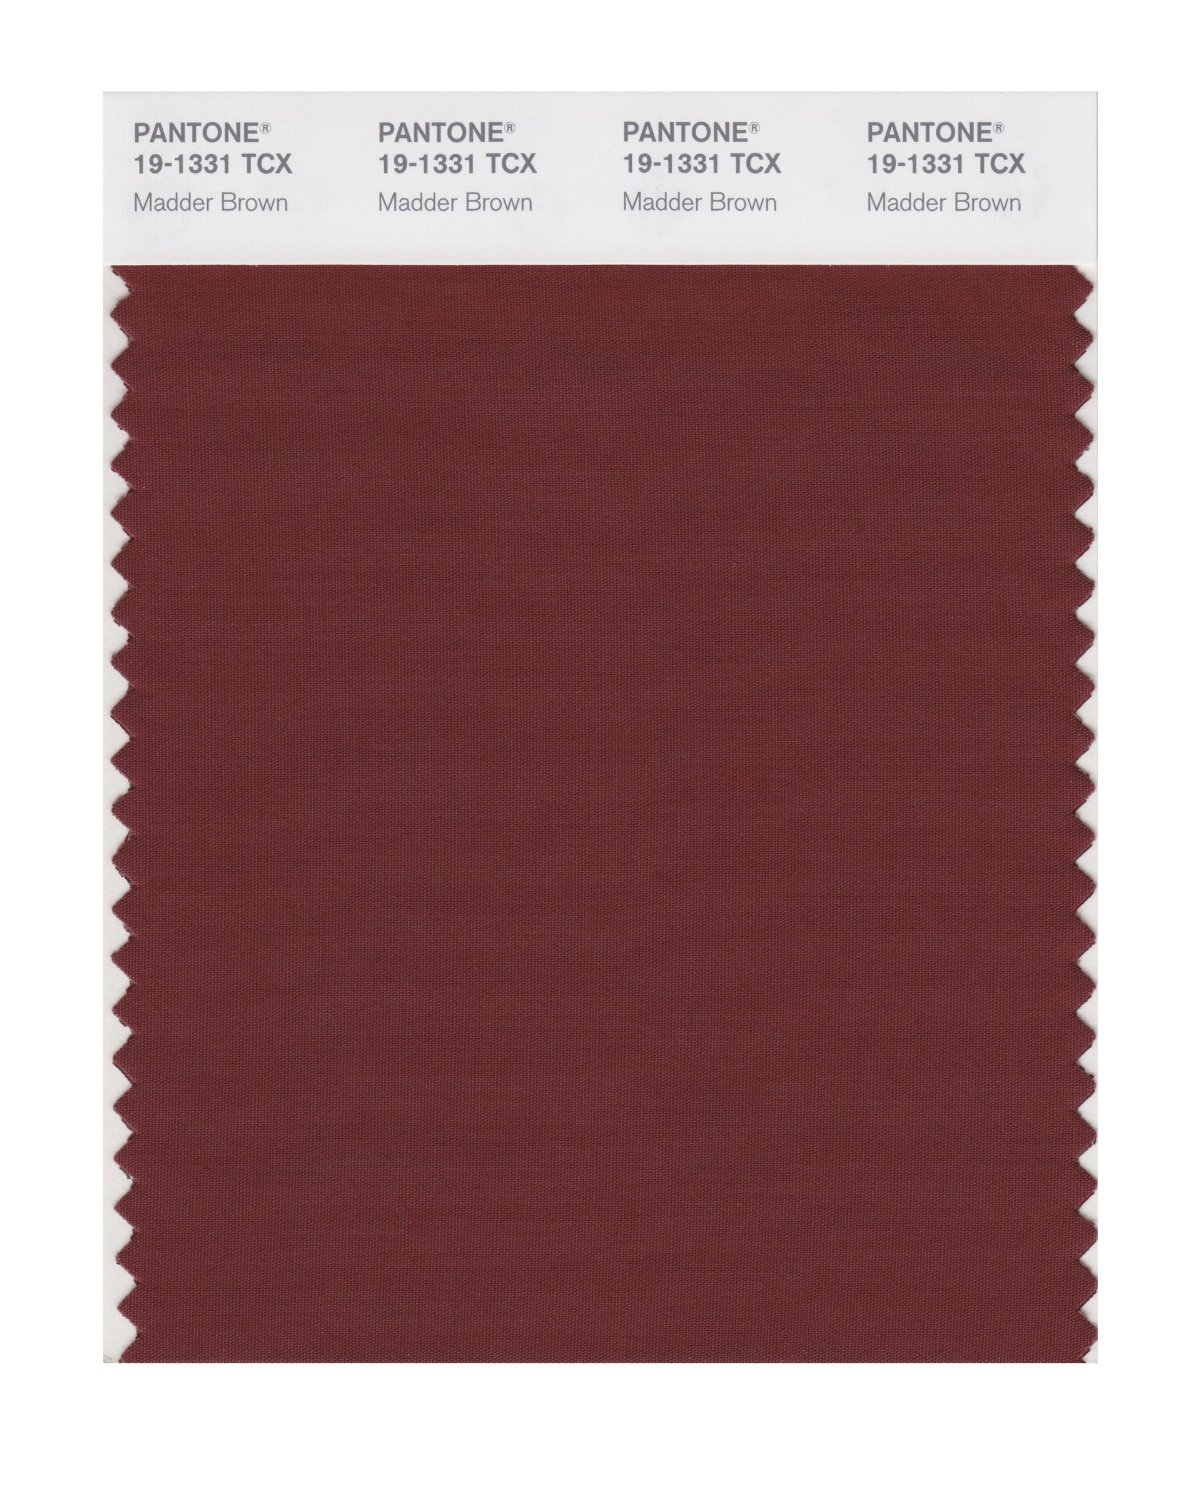 Pantone Smart Swatch 19-1331 Madder Brown